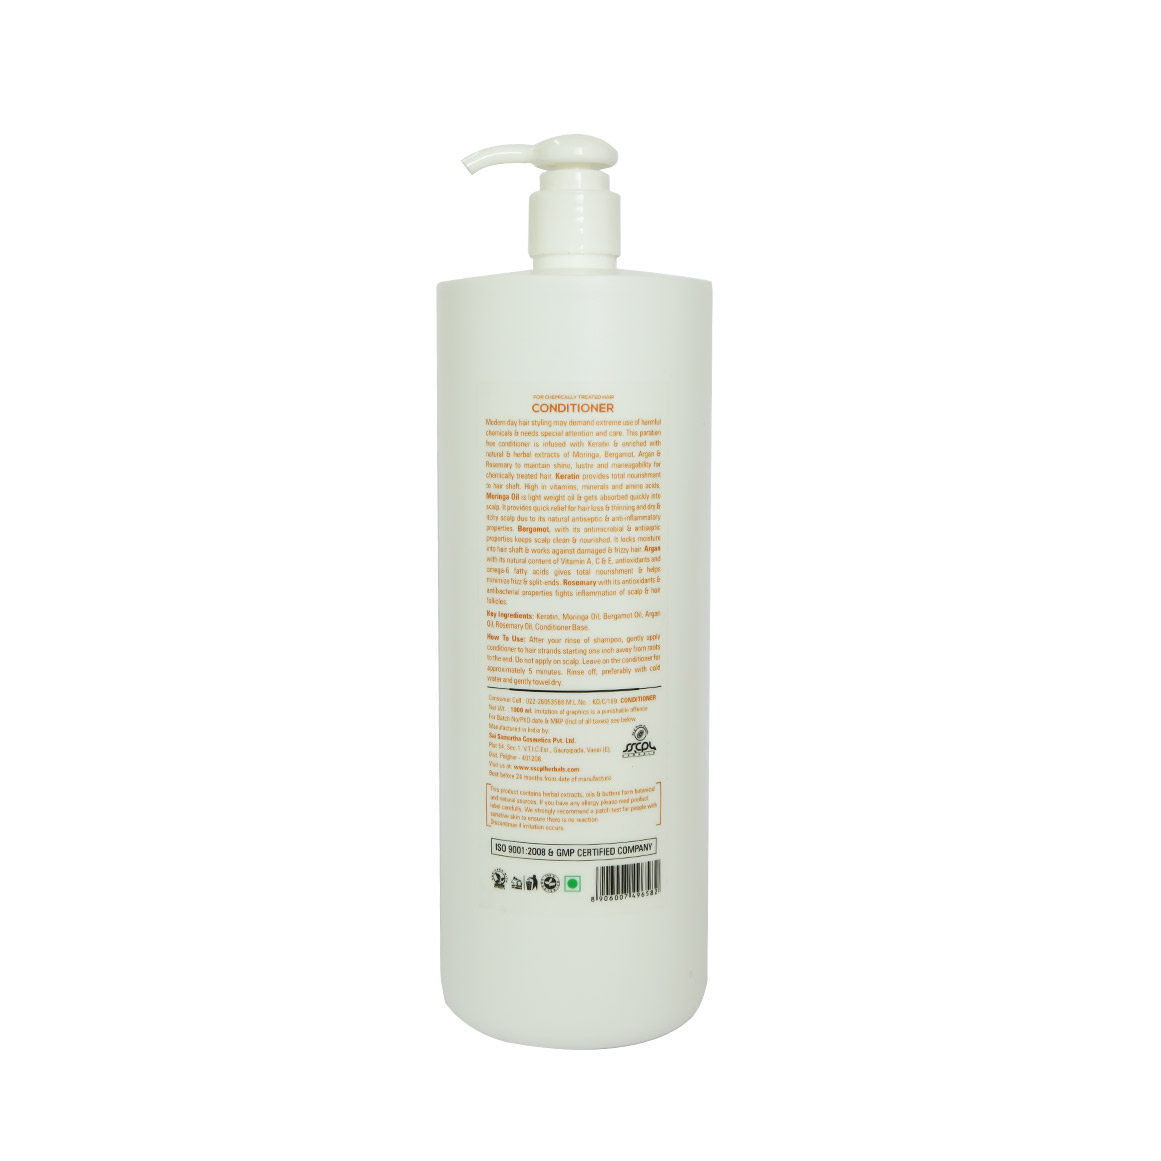 Conditioner For Chemically Treated Hair SSCPL Herbals